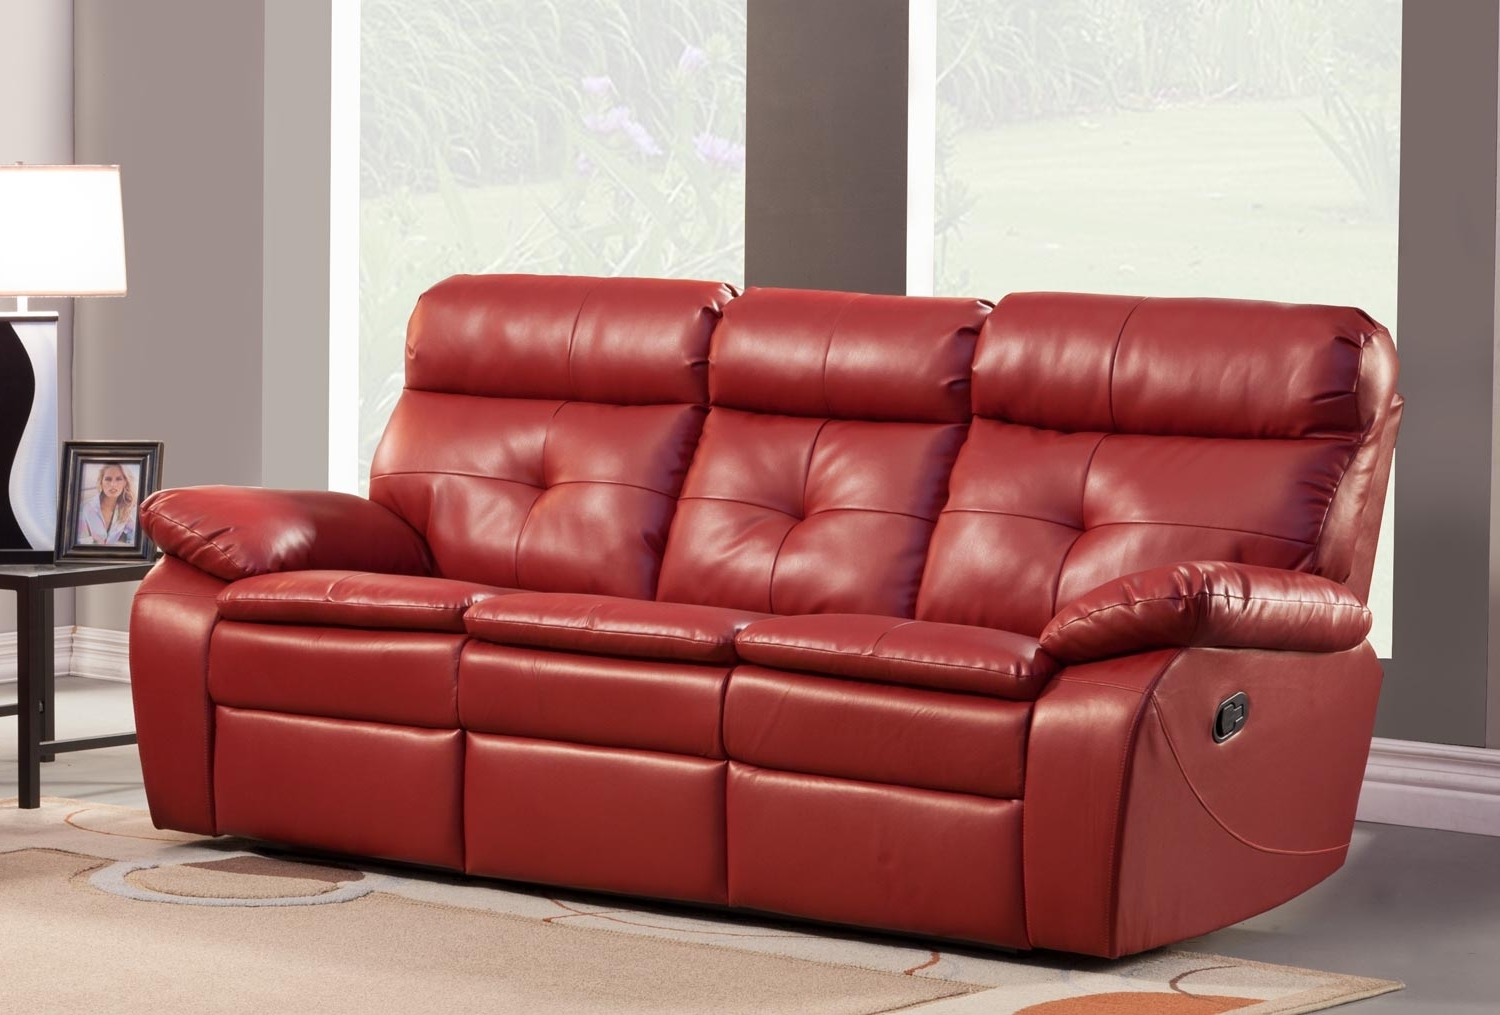 Red Leather Recliner Sofa – Home And Textiles Within Preferred Red Leather Reclining Sofas And Loveseats (View 6 of 20)